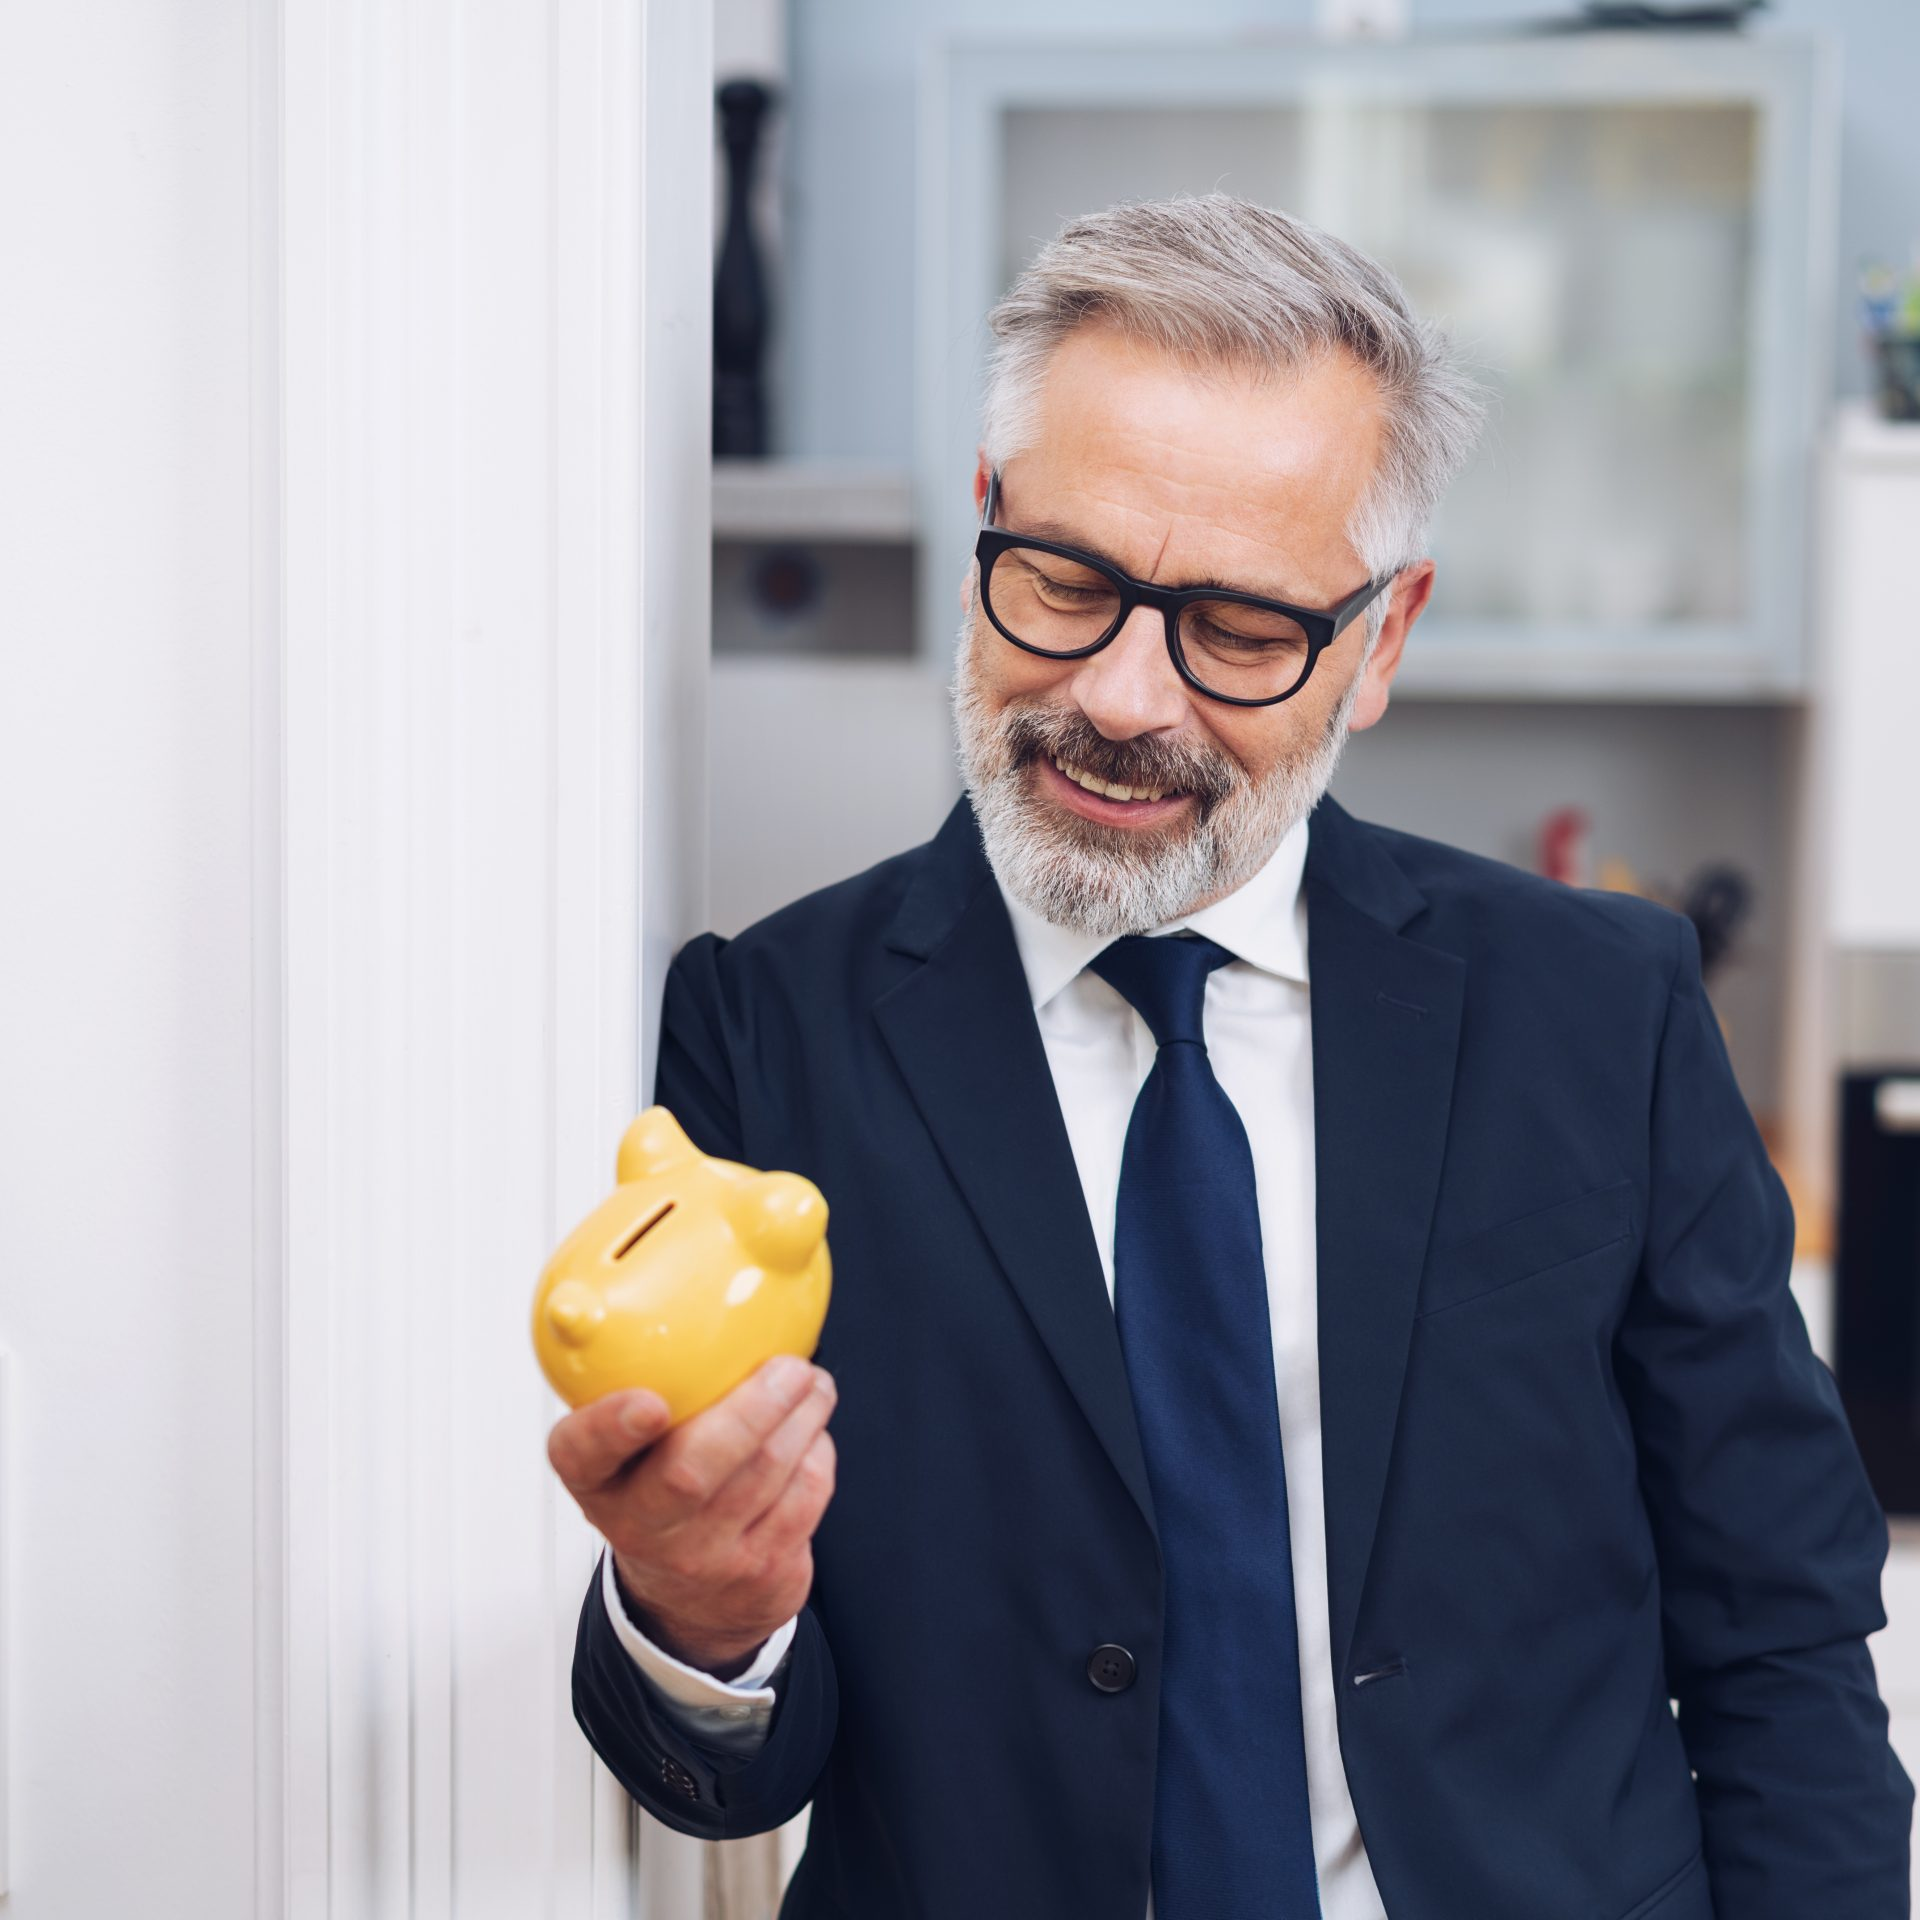 Successful businessman looking at a yellow handheld piggy bank with a pleased smile as he leans against a door frame at home